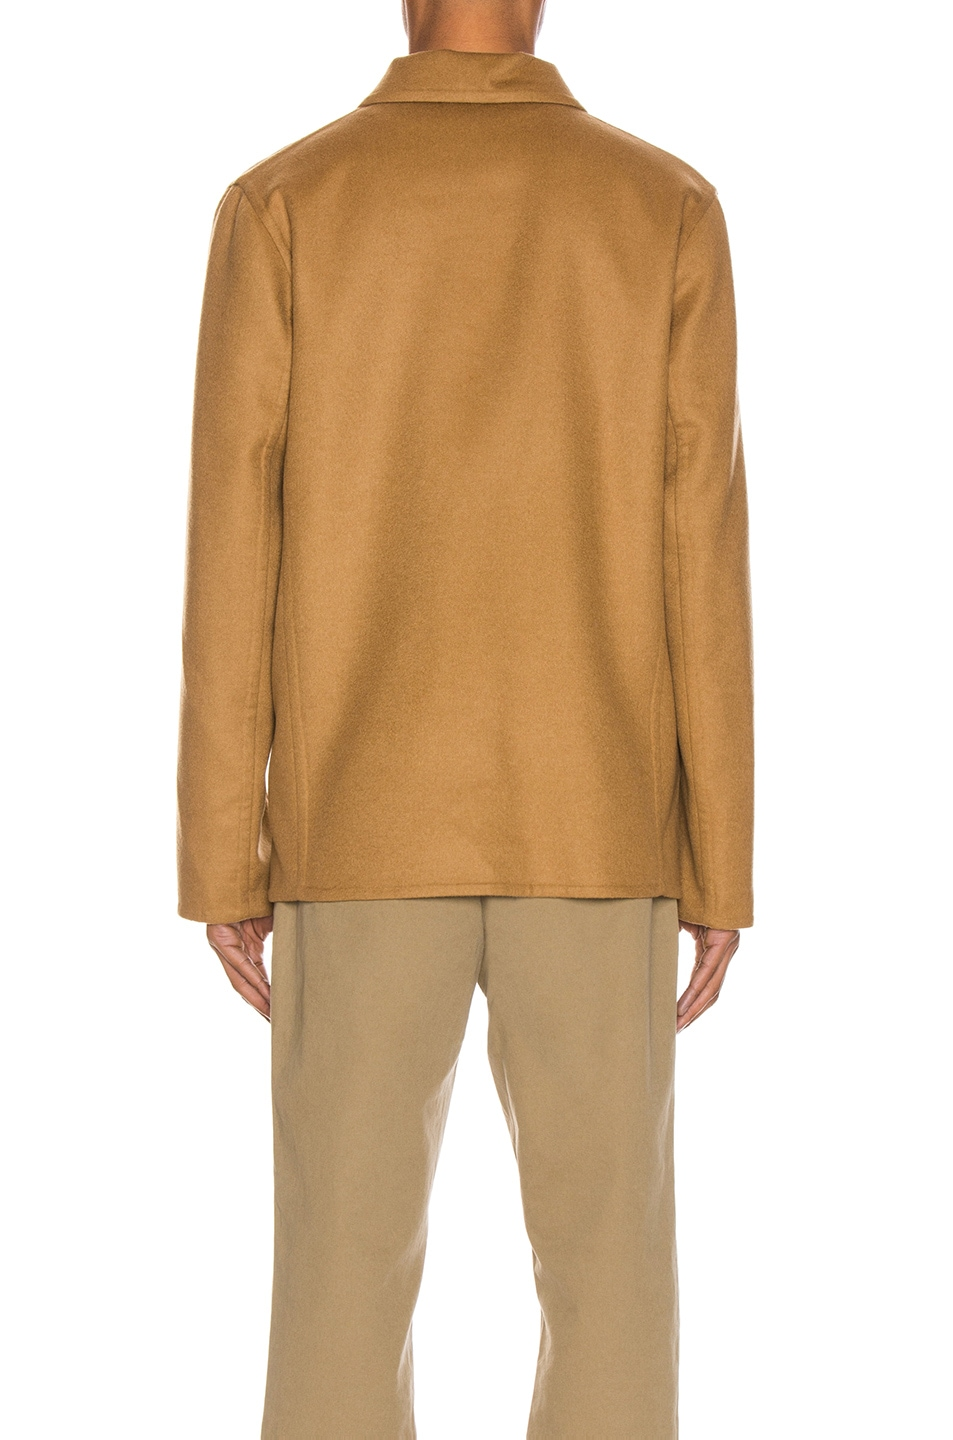 Image 5 of Loewe Button Jacket Patch Pockets in Camel